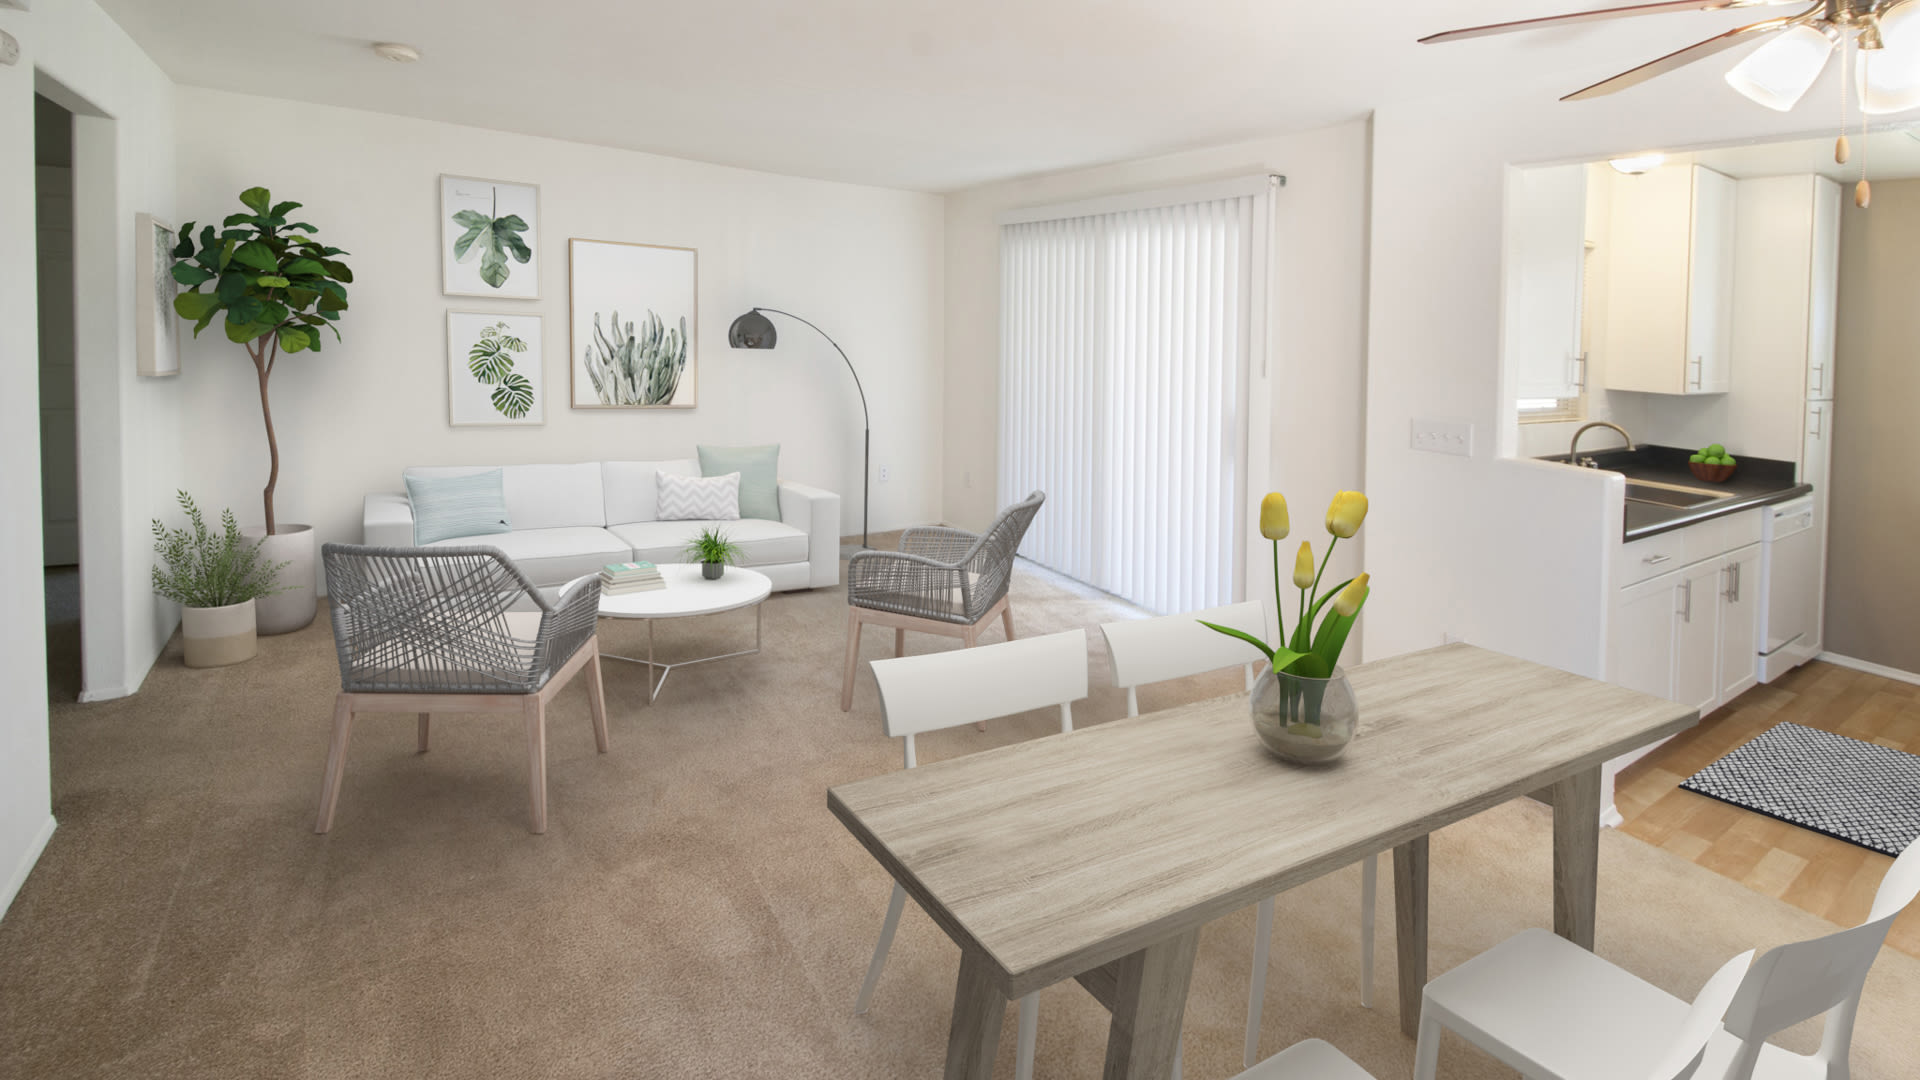 Ridgewood Apartments - Carpeted Living and Dining Room